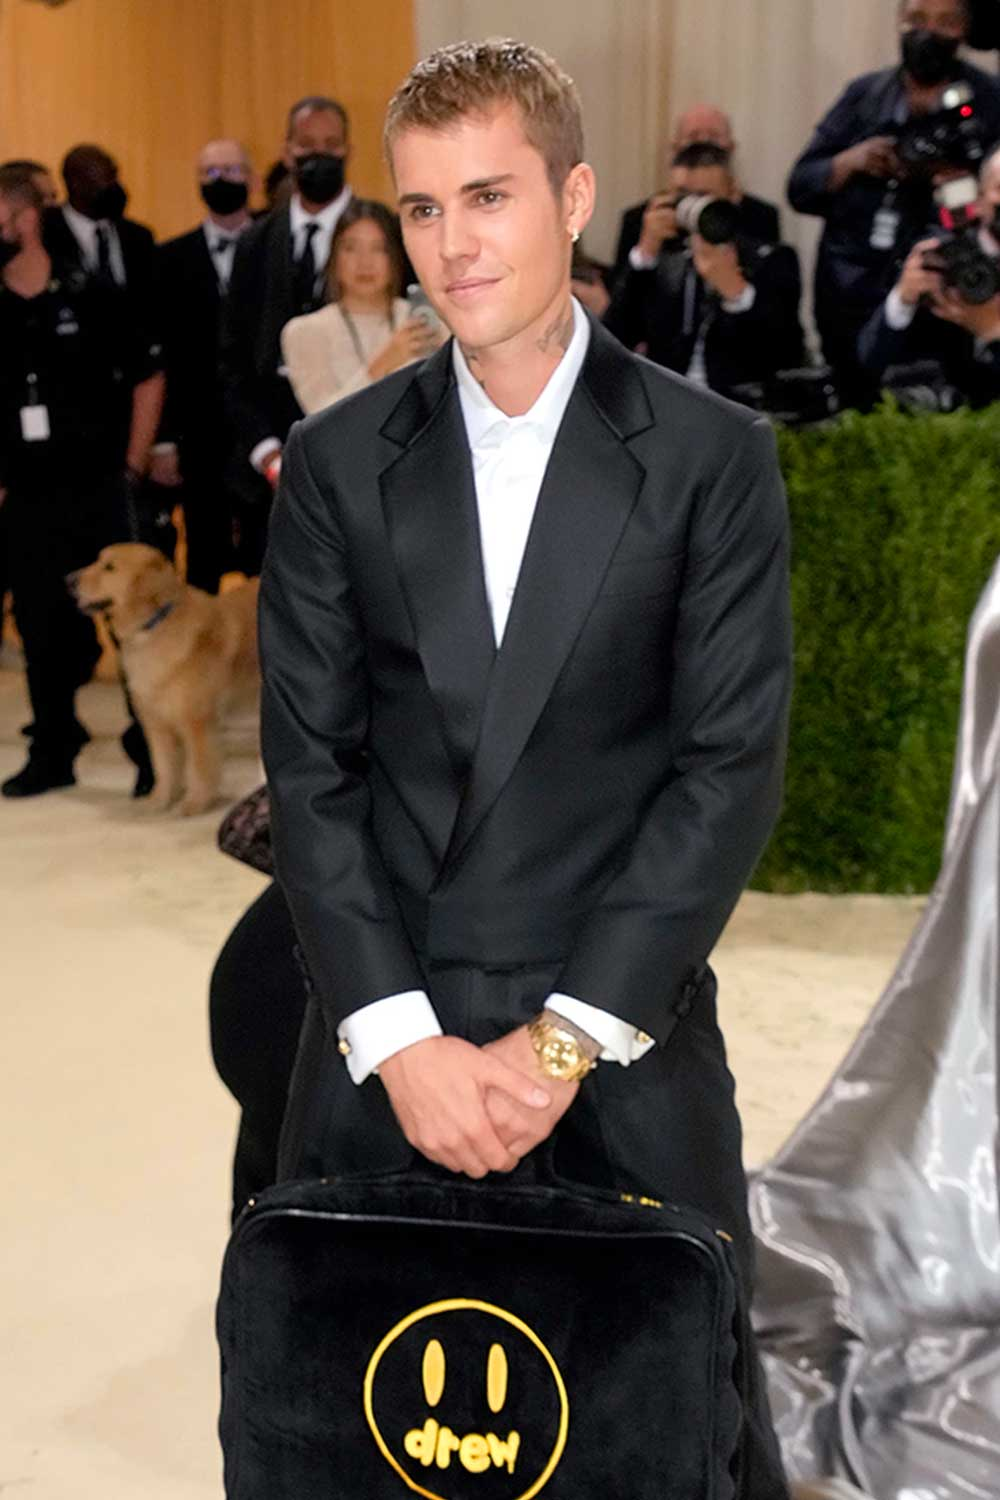 Justin Bieber at the Met Gala 2021, wristed with an all gold Rolex Dayton